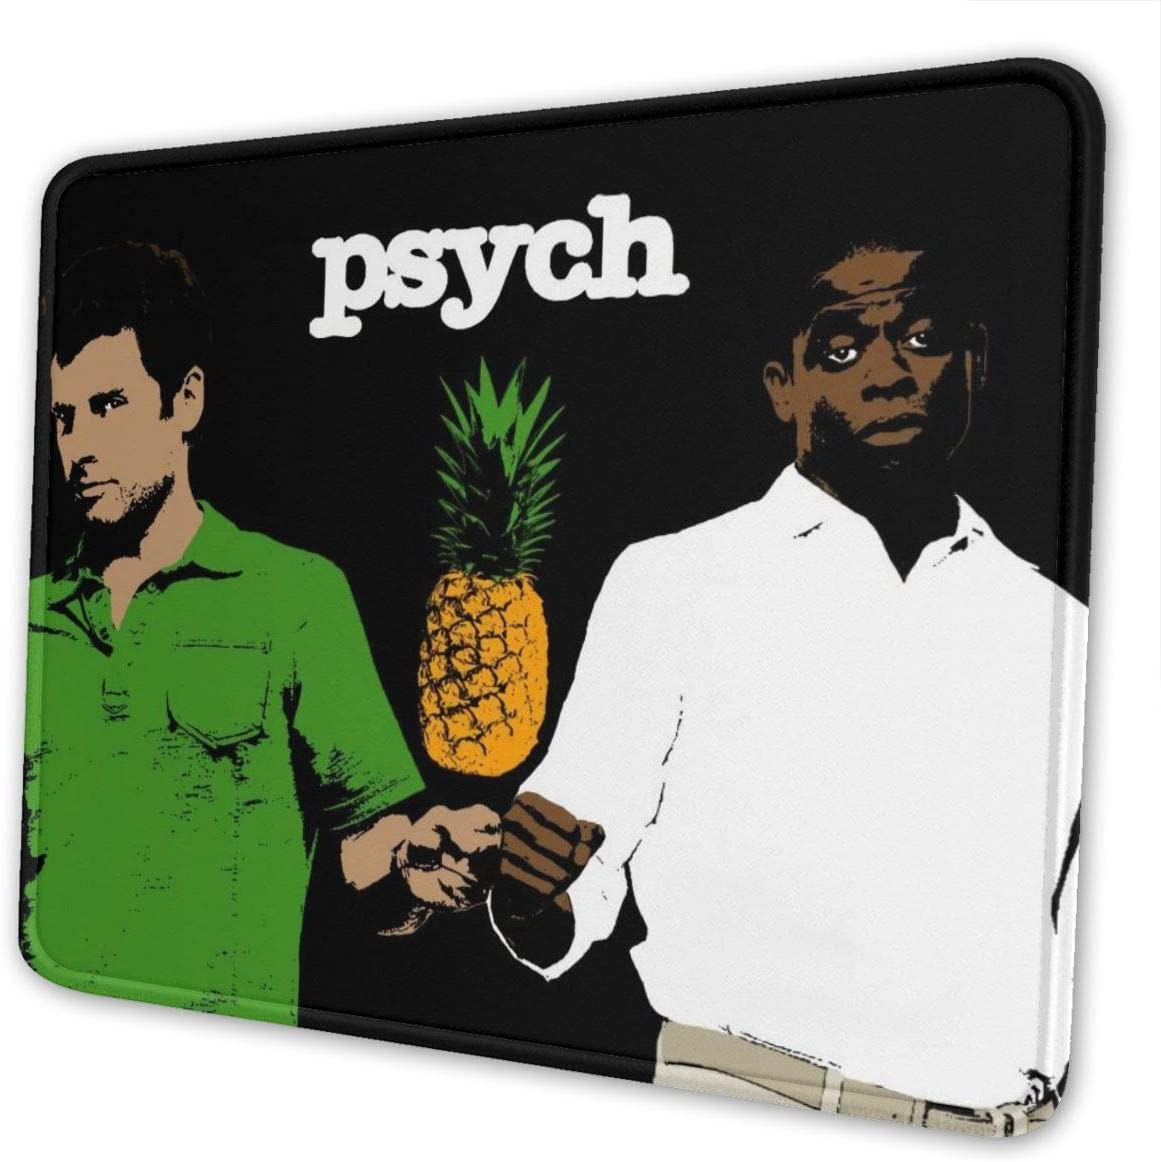 Psych Pineapple Mouse Pad Customized Mousepad Non-Slip Rubber Base Mouse Pads for Computers Laptop Office Mouse Pad for Kids